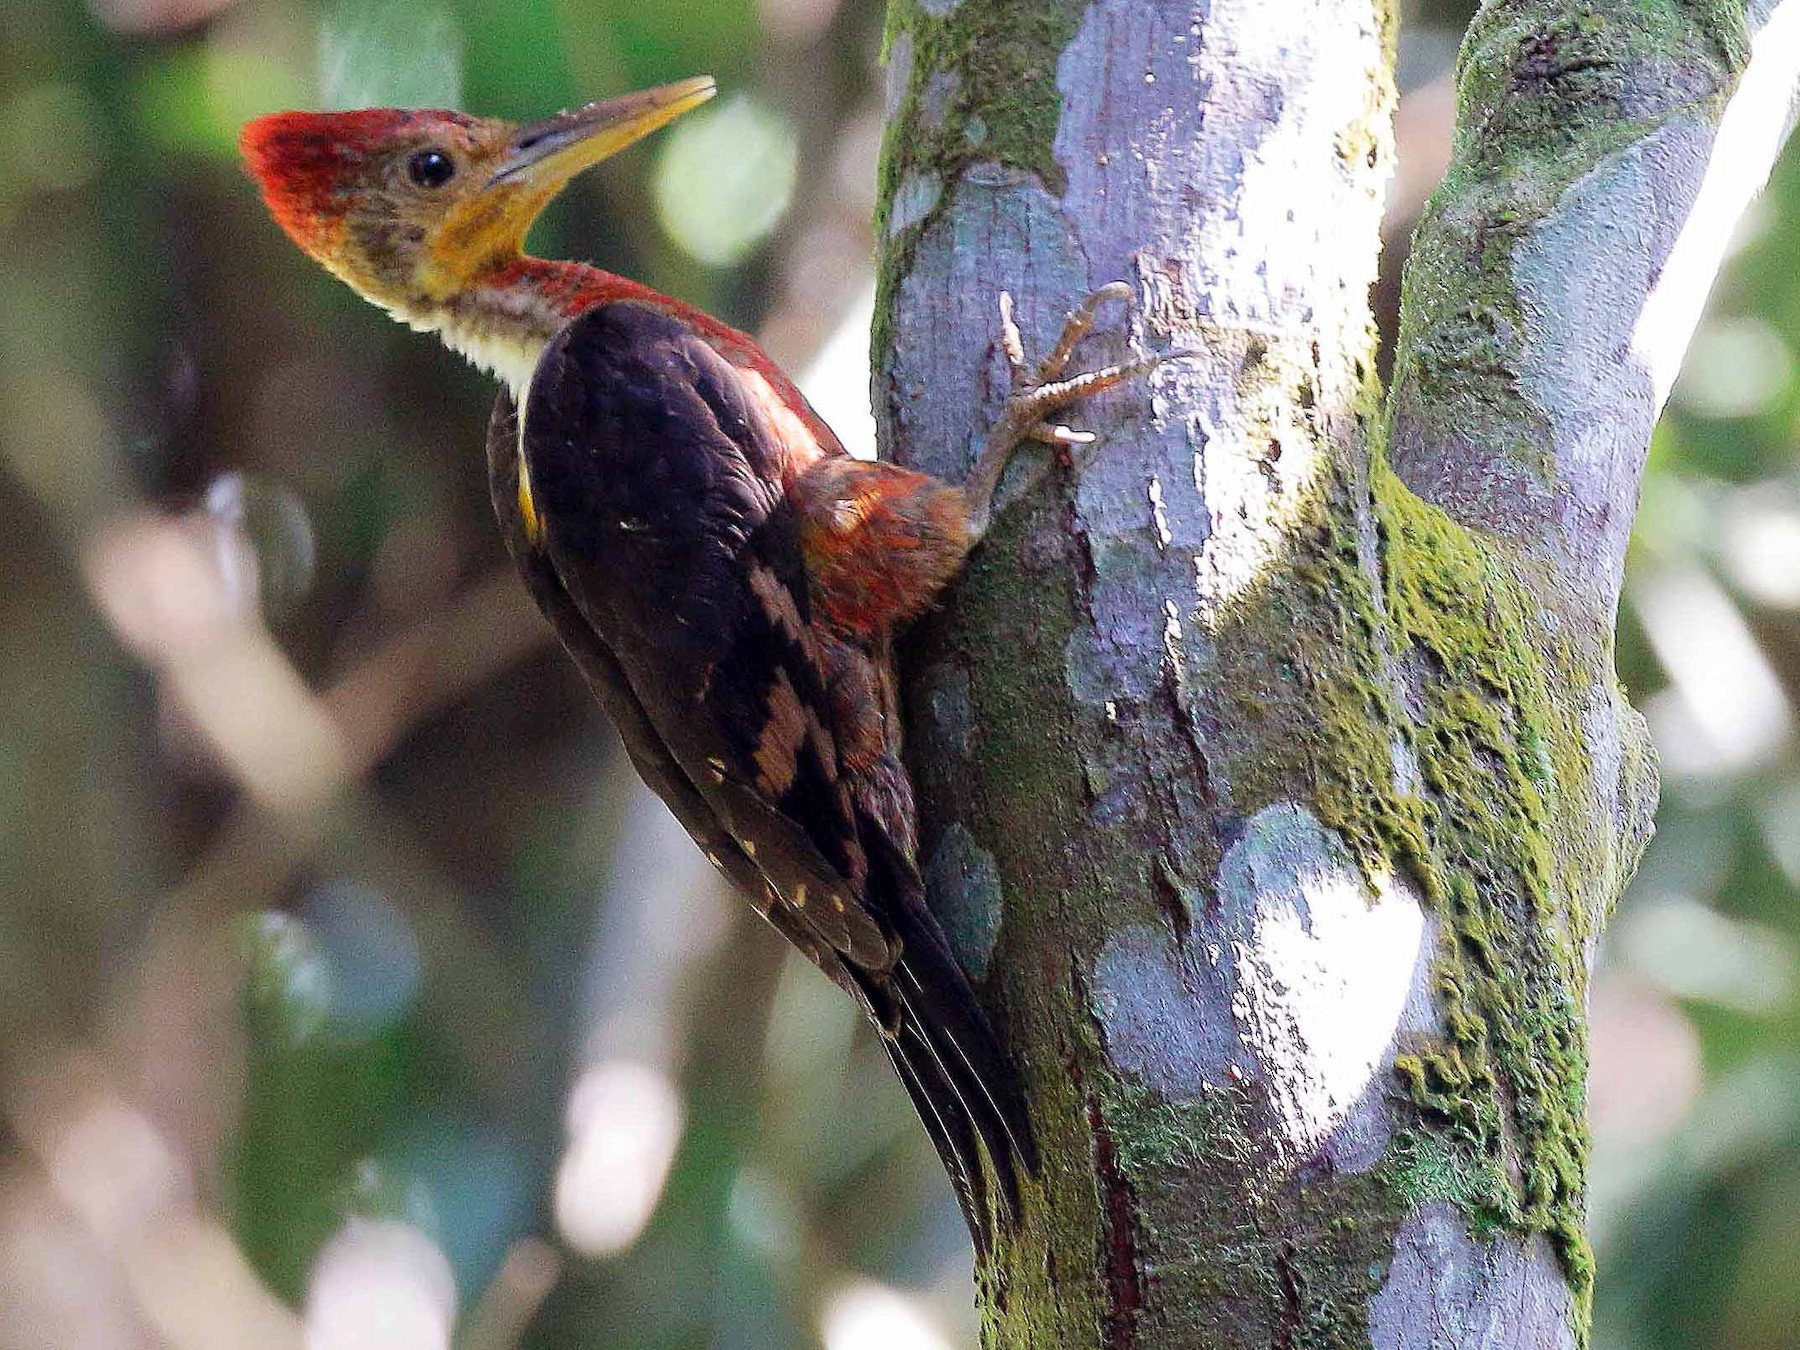 Orange-backed Woodpecker - Neoh Hor Kee